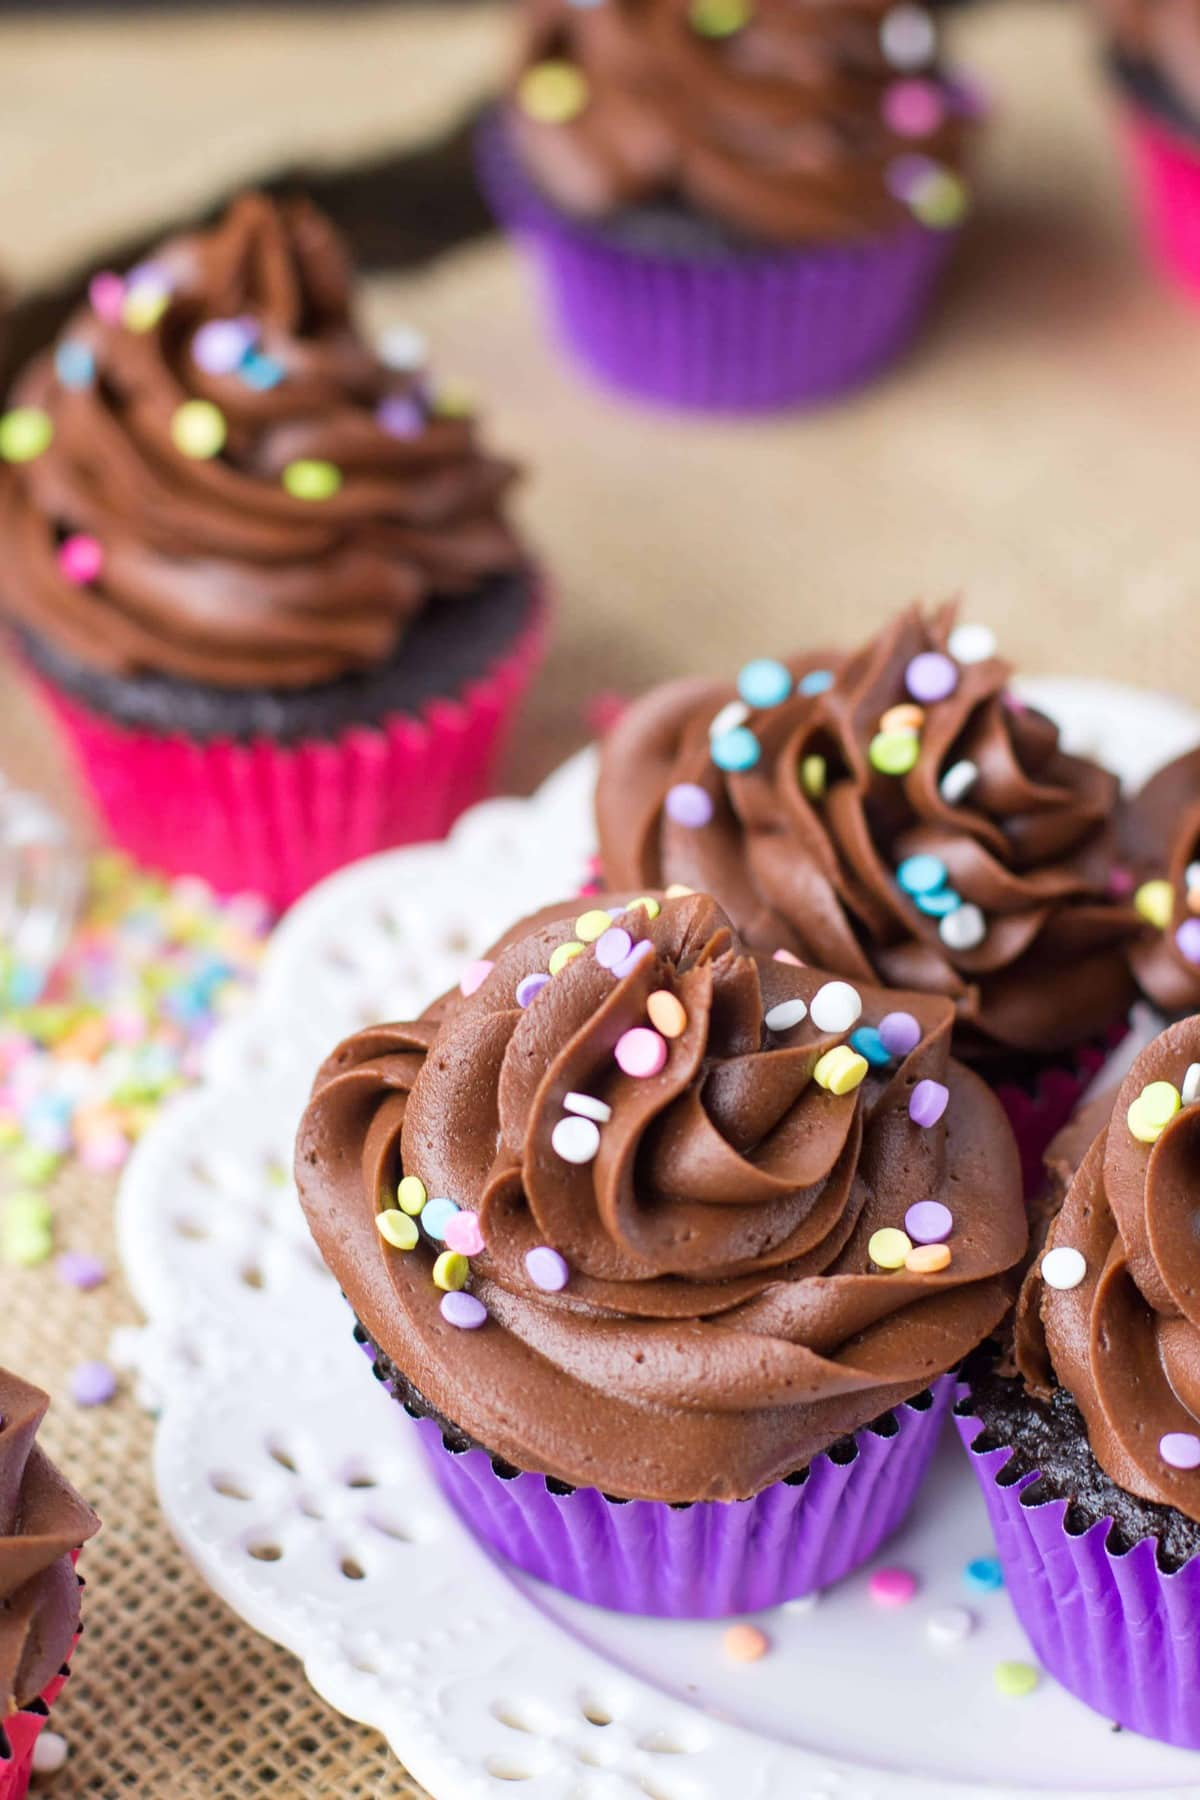 Simple chocolate cupcake recipe without baking soda